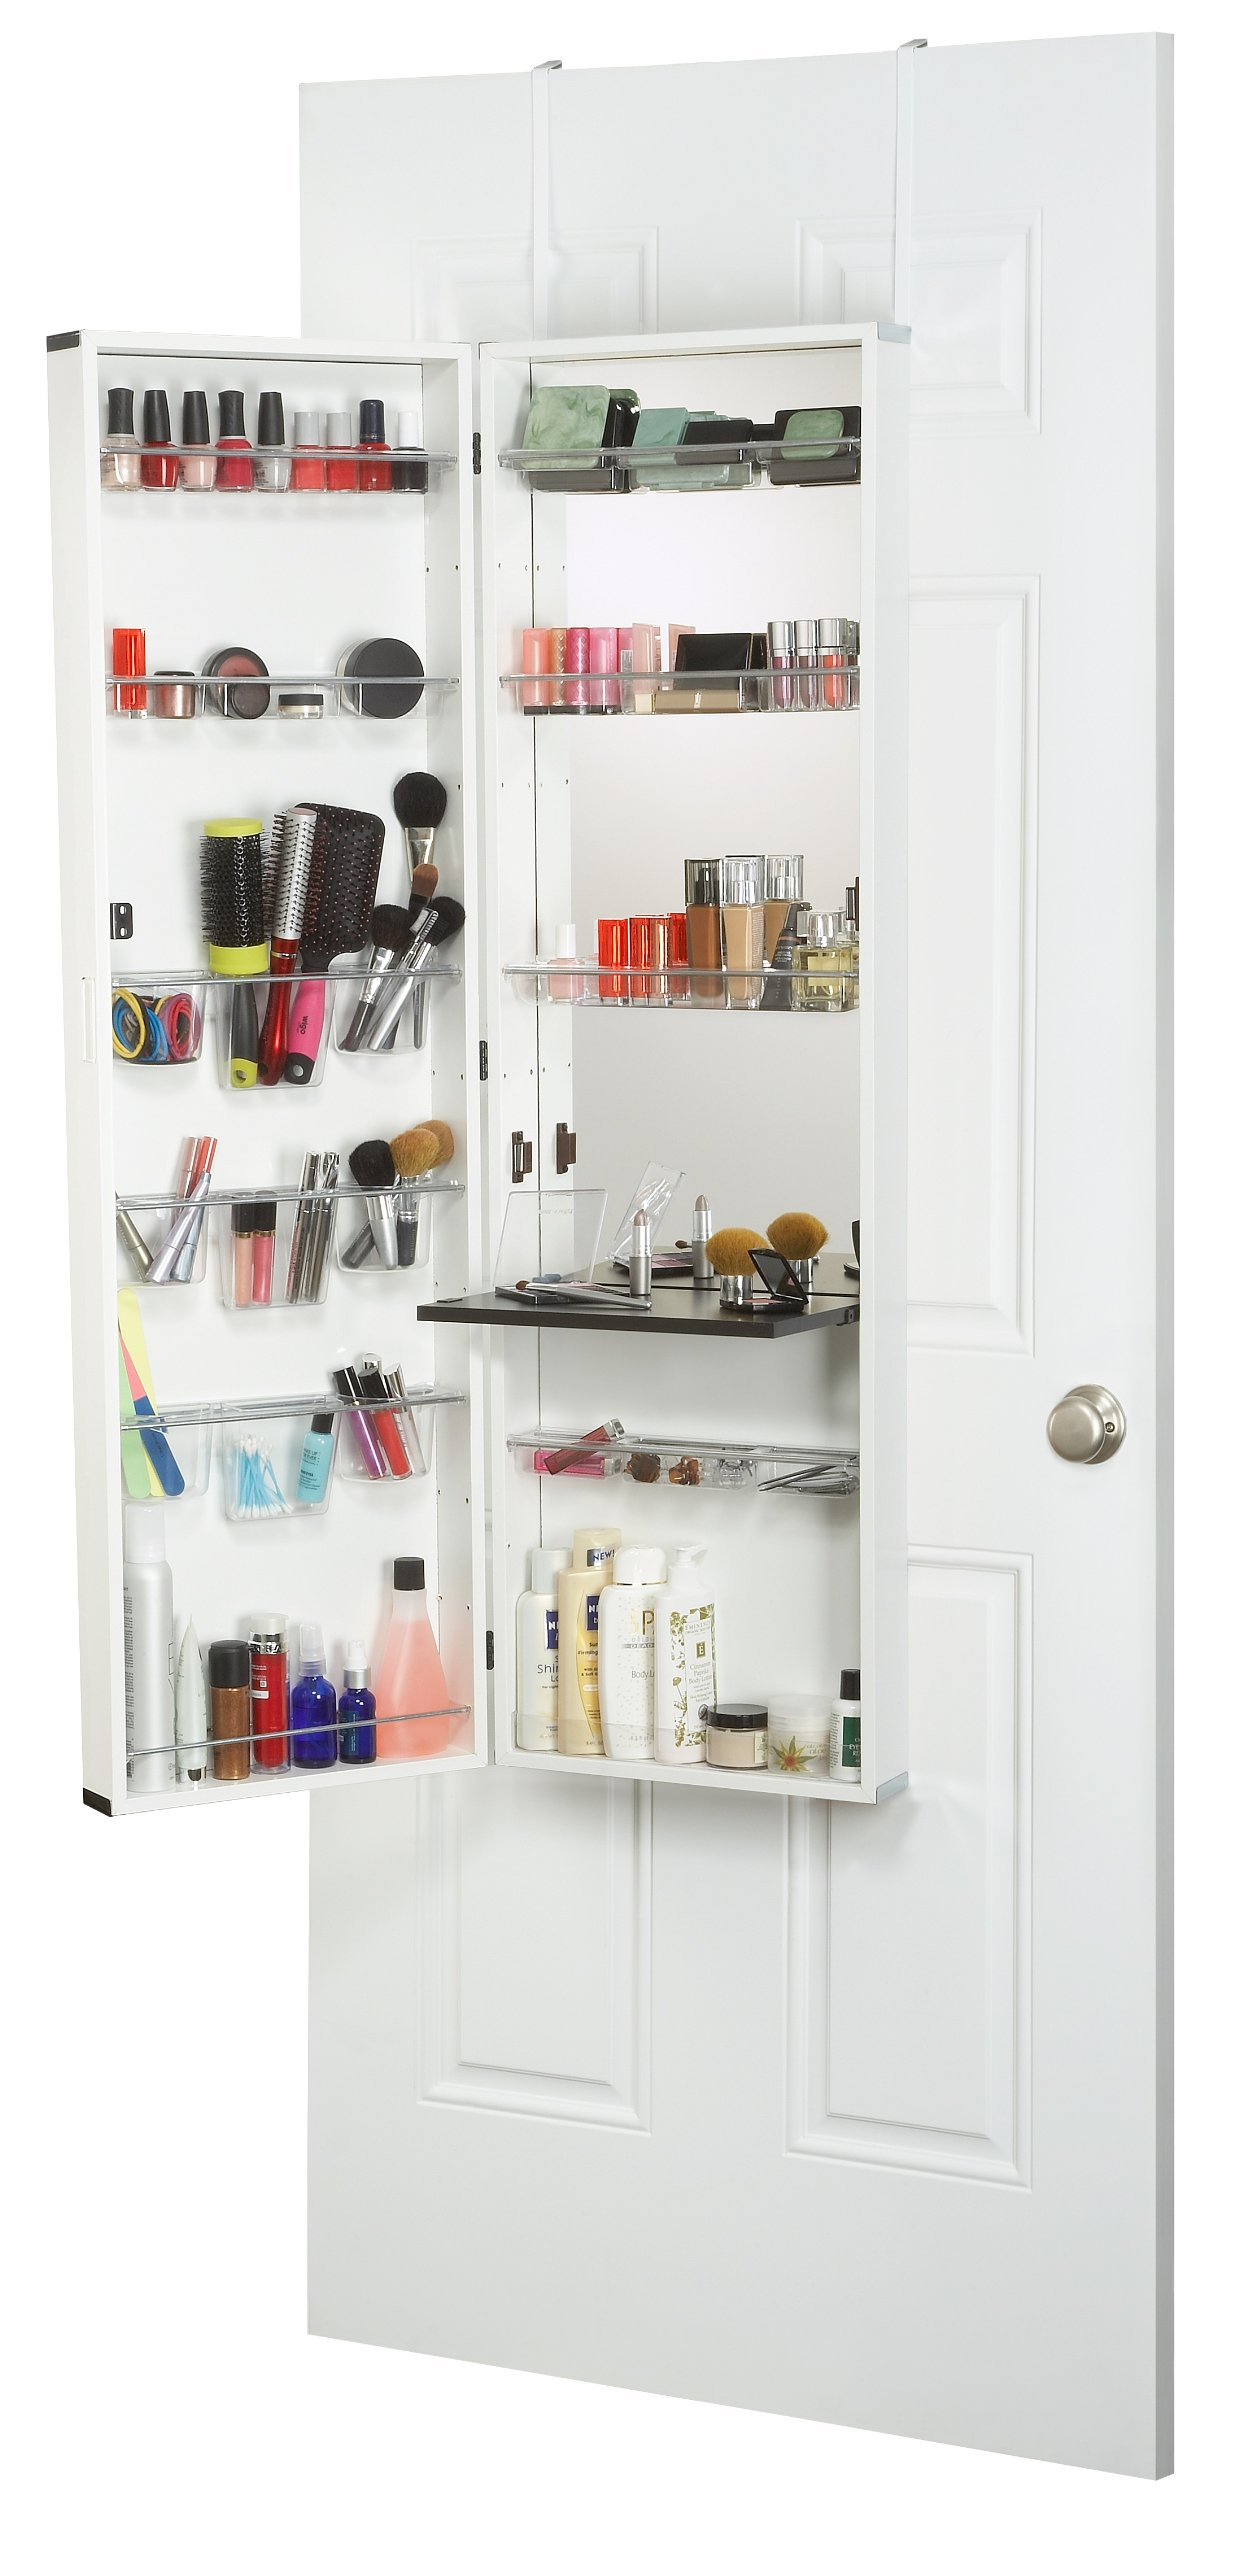 Mirrotek Beauty Armoire Makeup Organizer With Vanity Table White Finish Frame Ebay